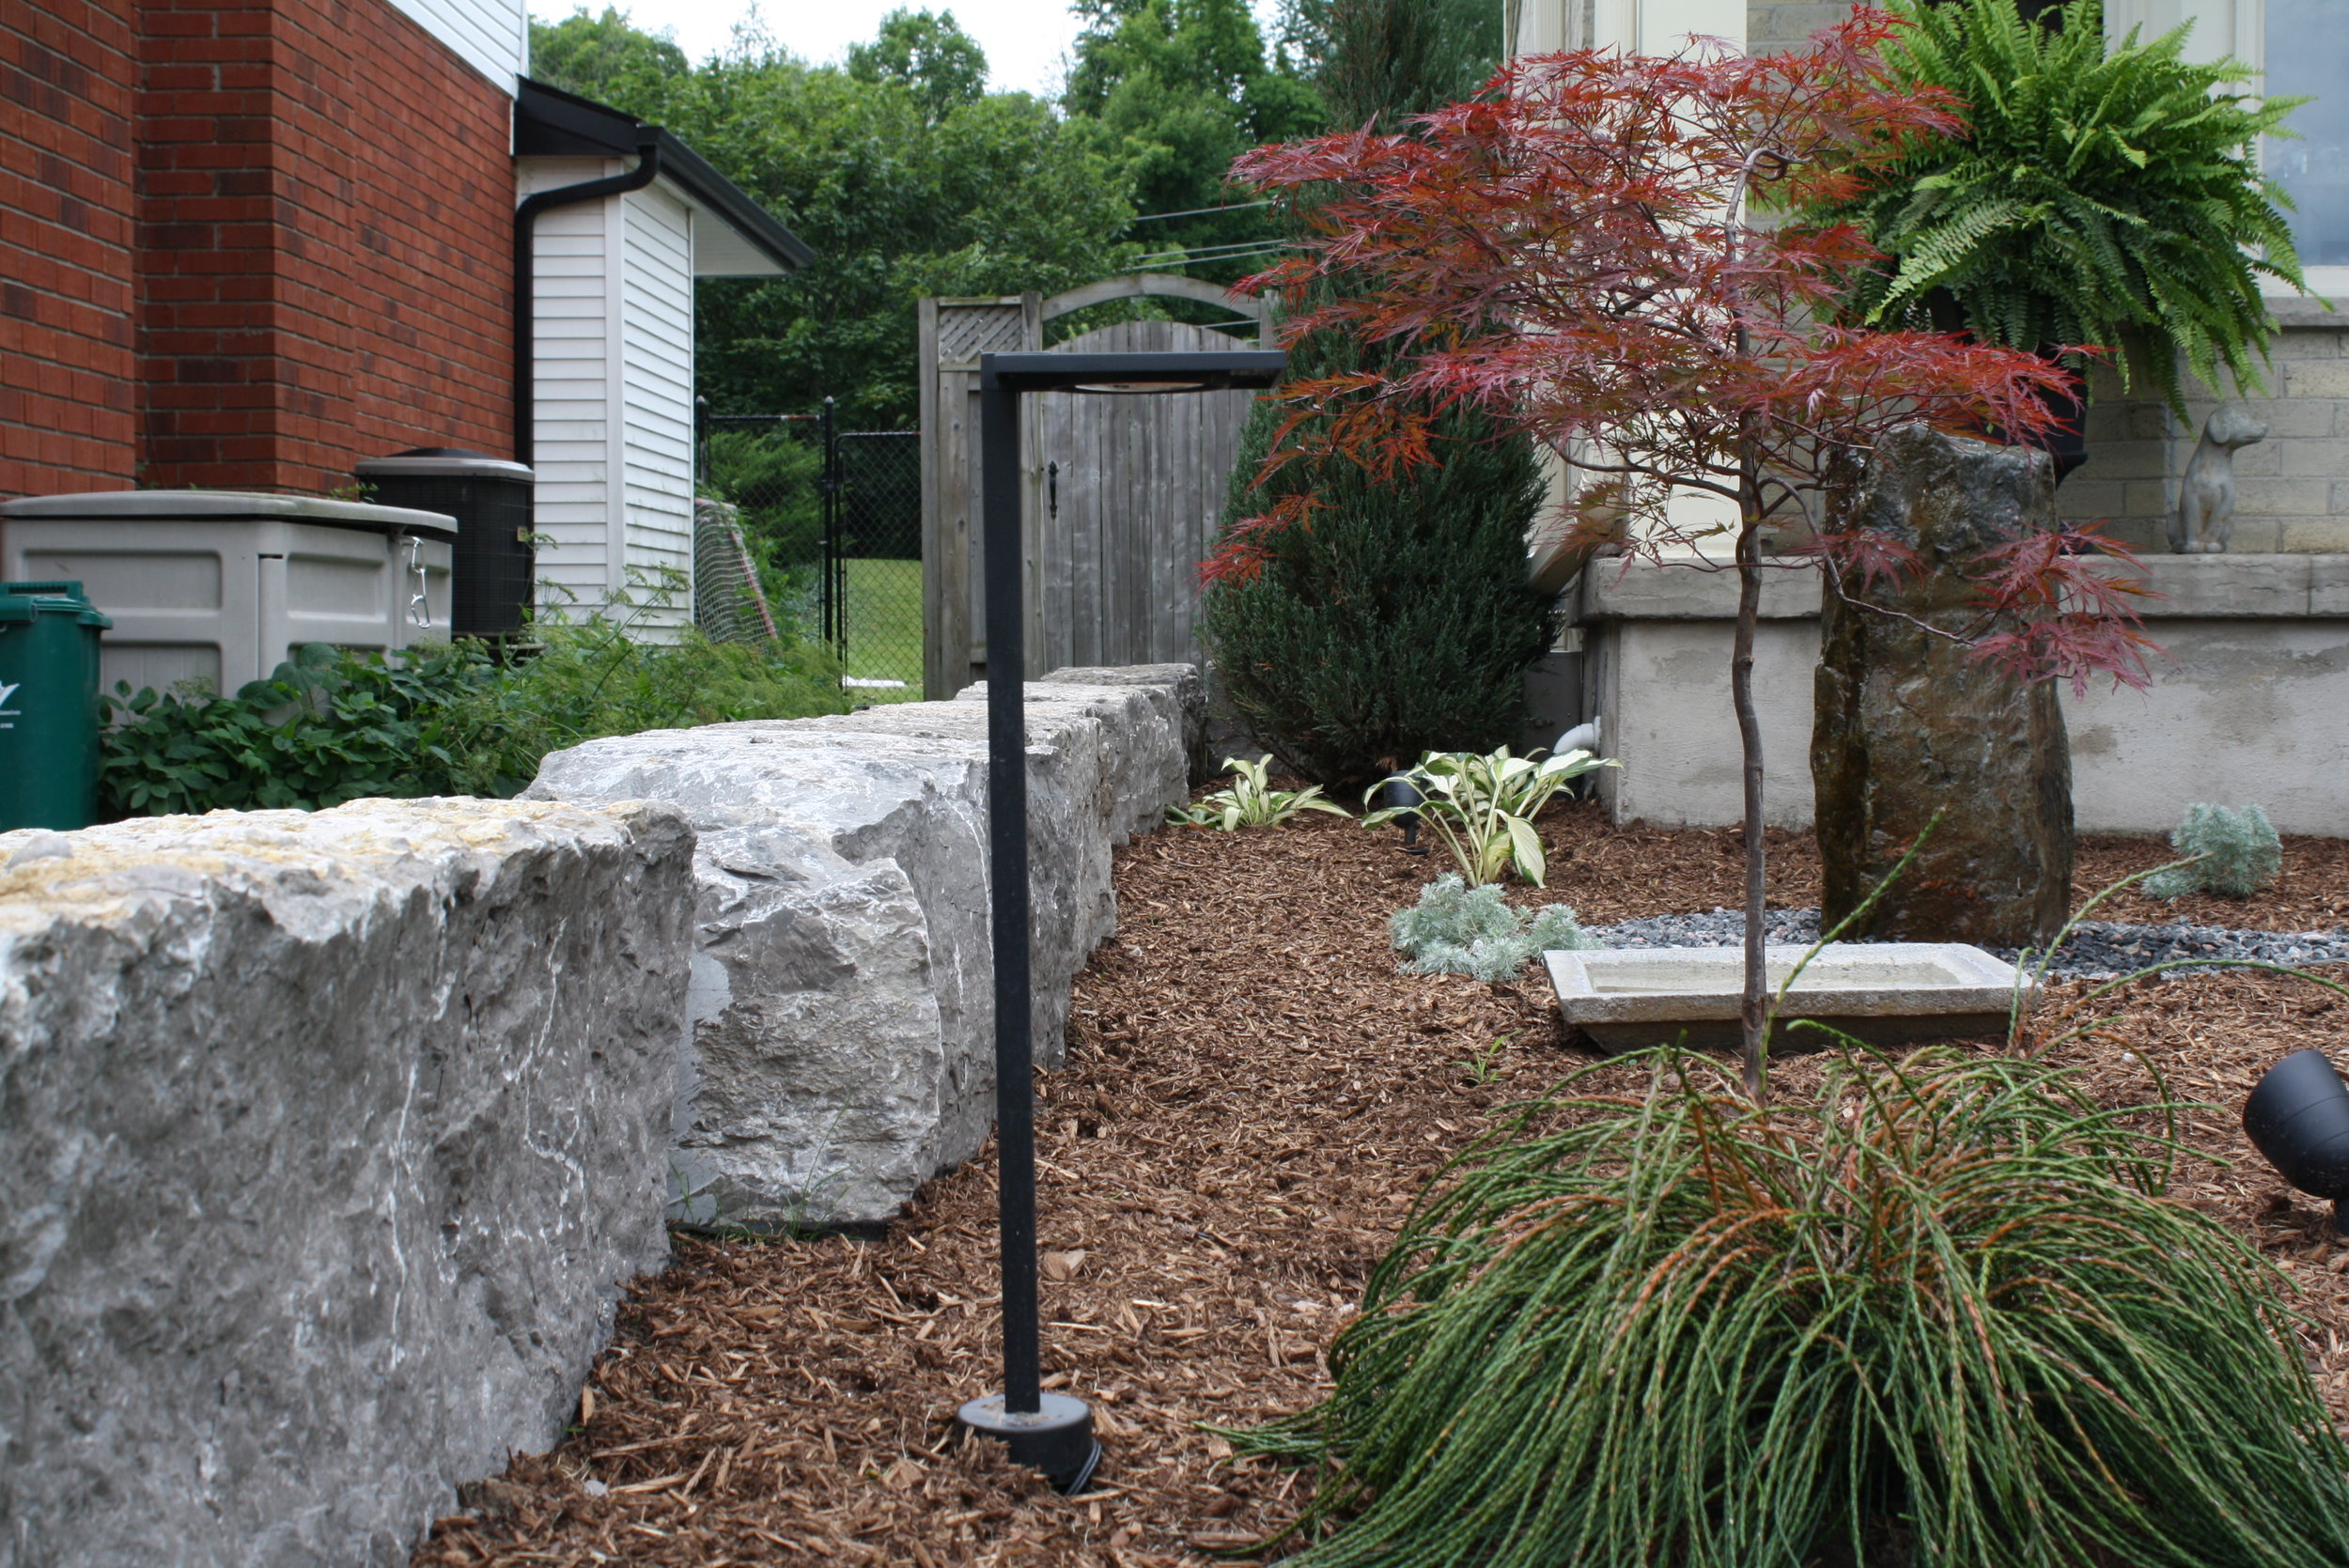 Specializing In Custom Outdoor Creations - We Create Value One Home At A Time